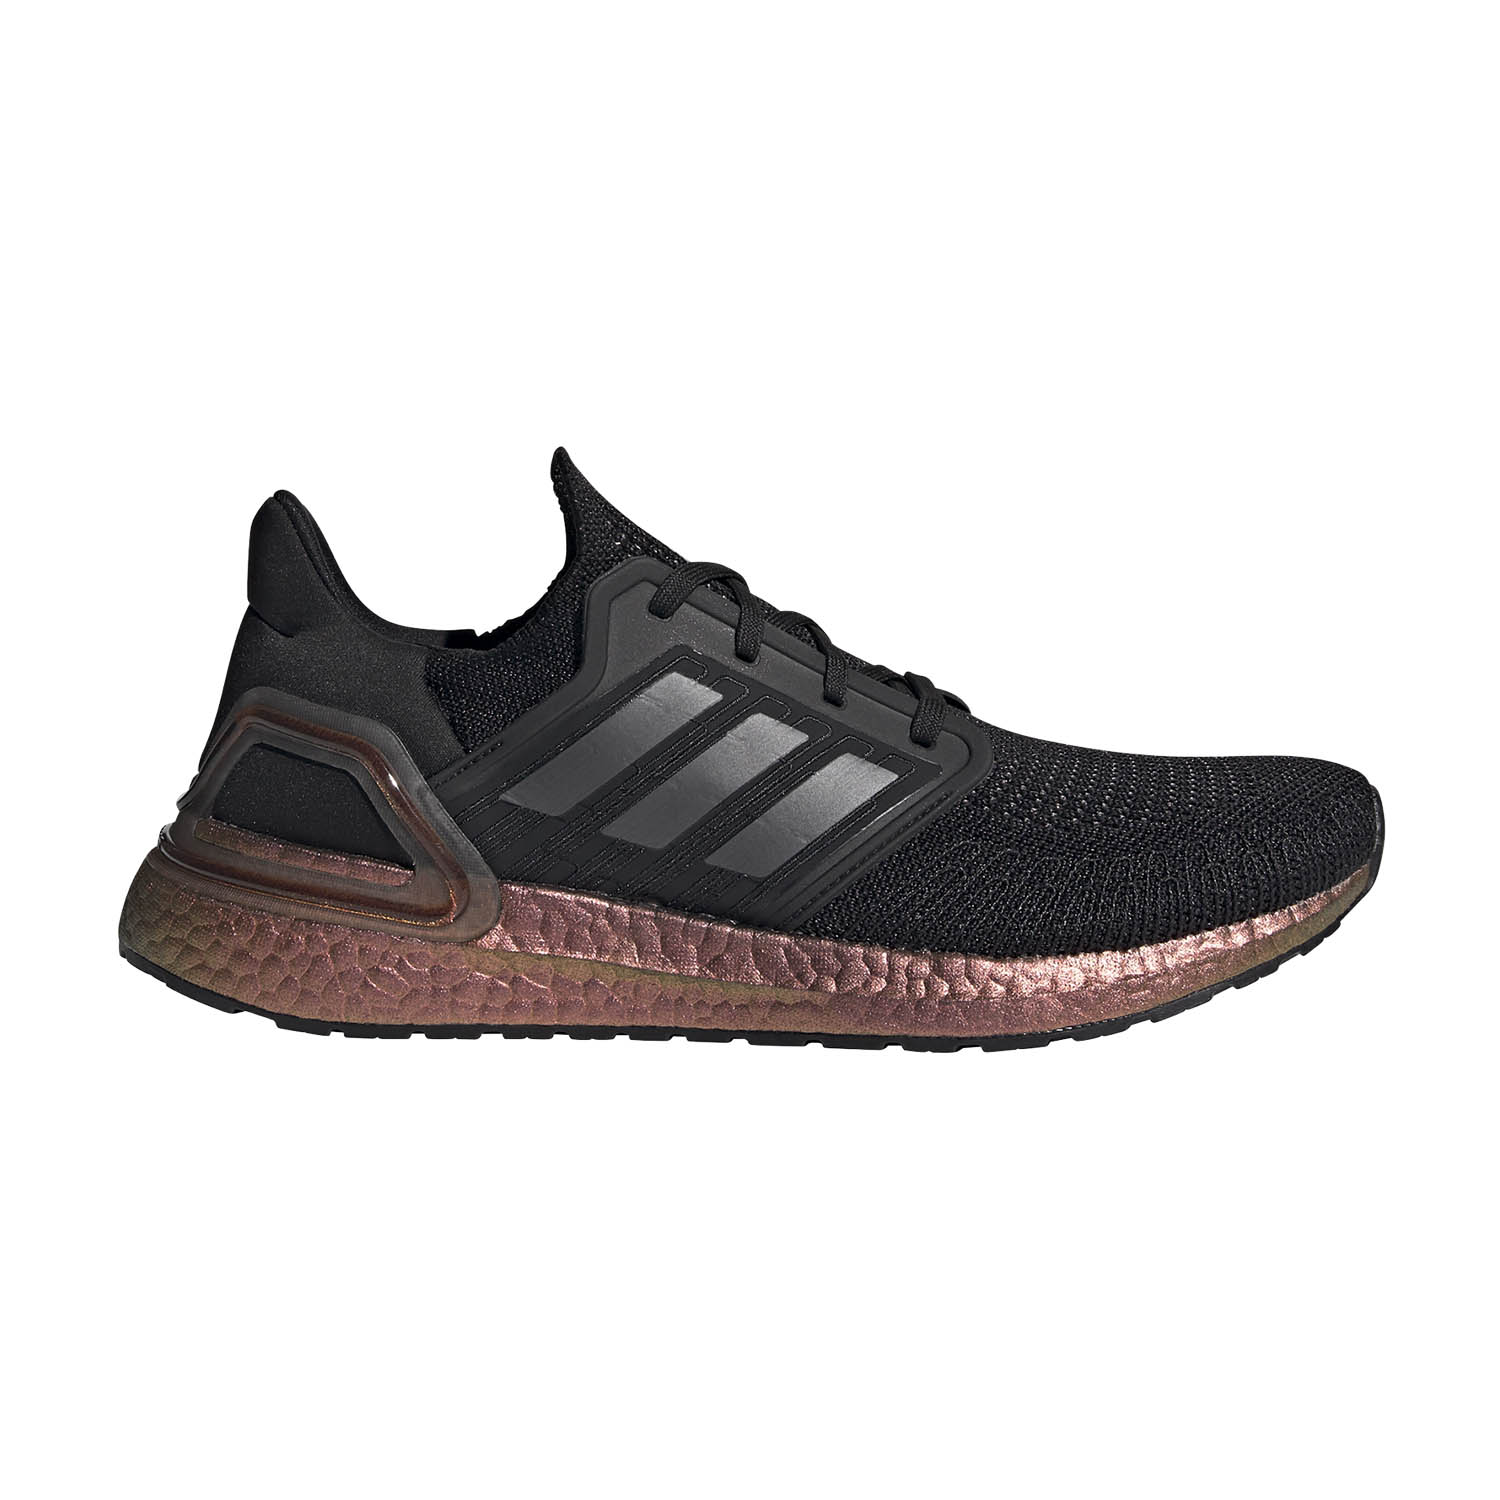 Adidas Ultraboost 20 - Core Black/Grey Five/Signal Pink